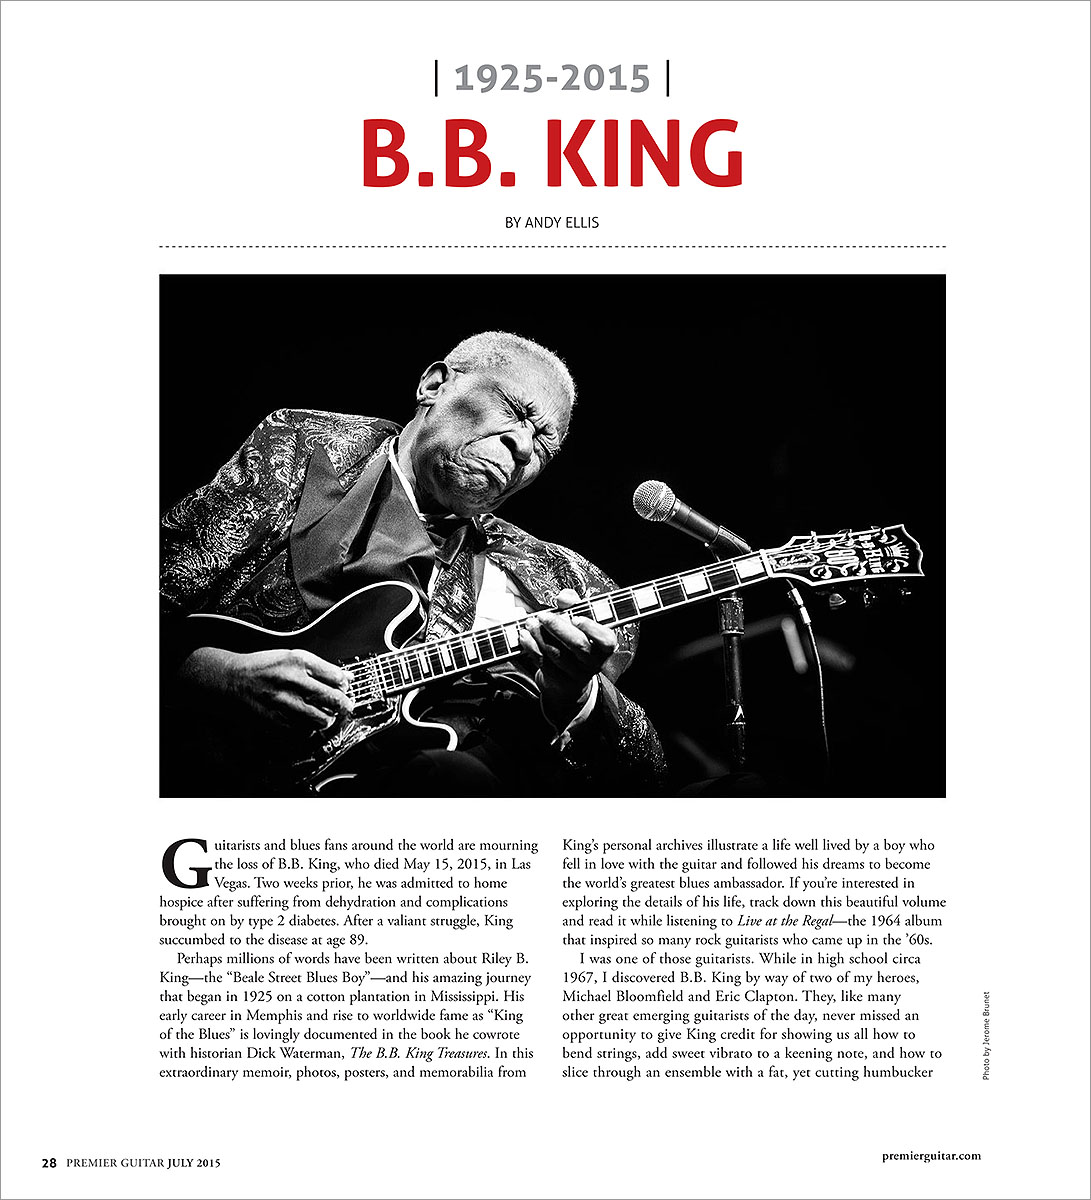 Jerome_Brunet_BB_King_Premier_Guitar_magazine_05